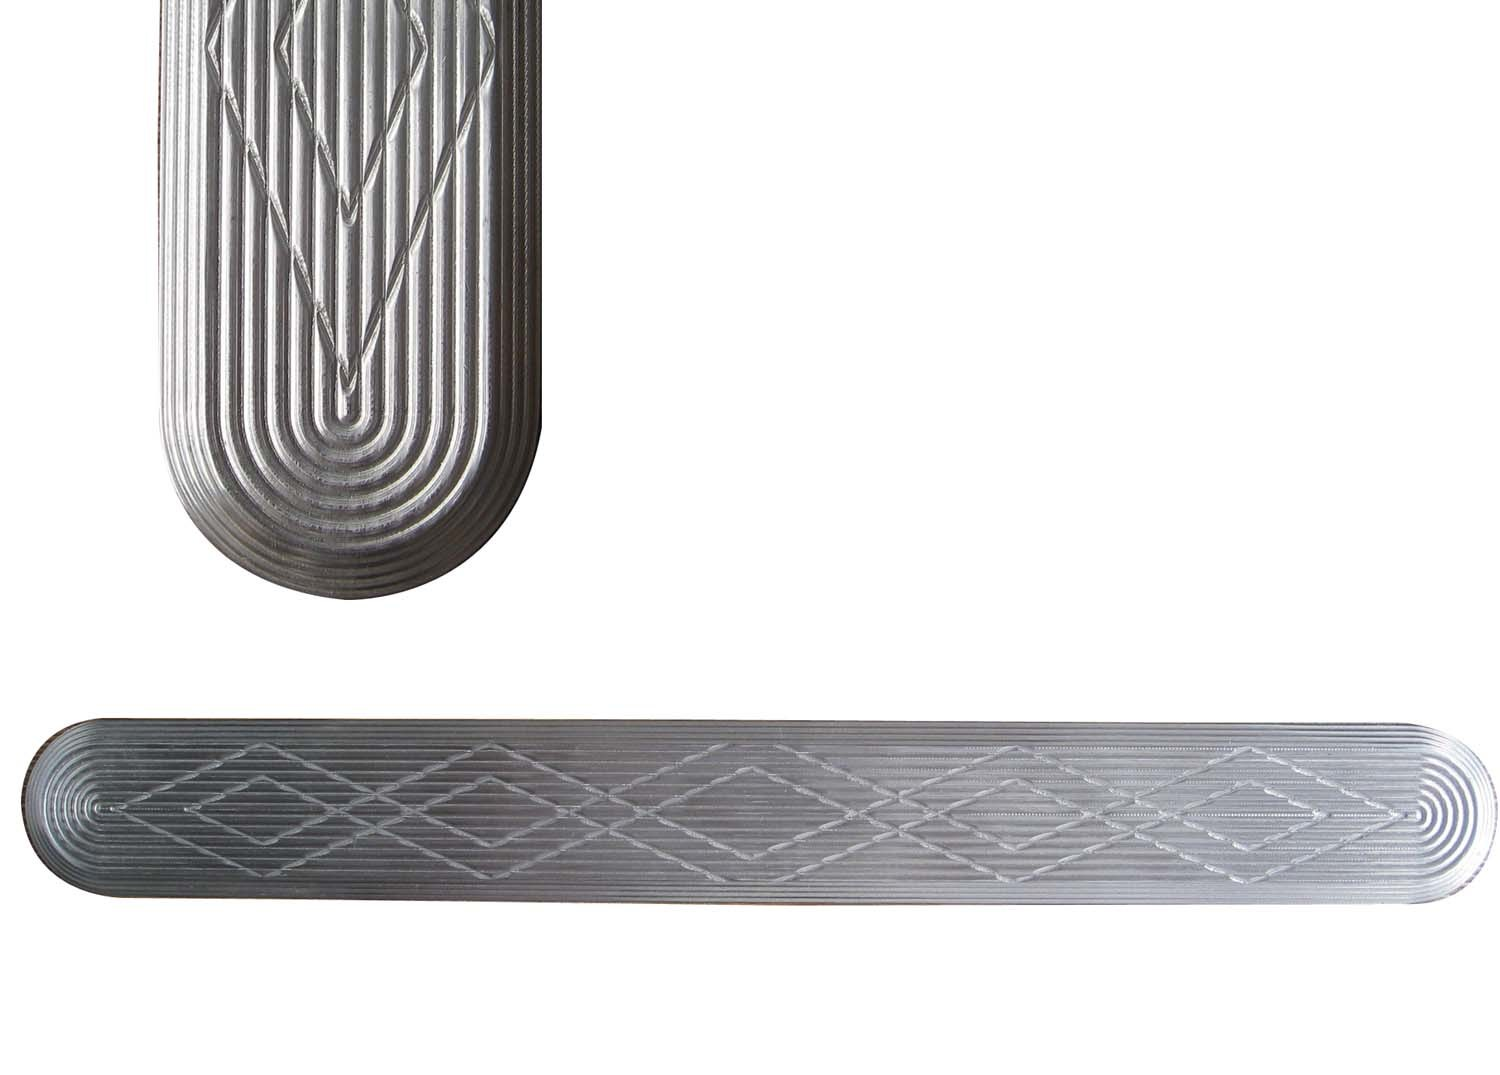 Stainless Steel Tactile Indicator Bar (XC-MDT5001)